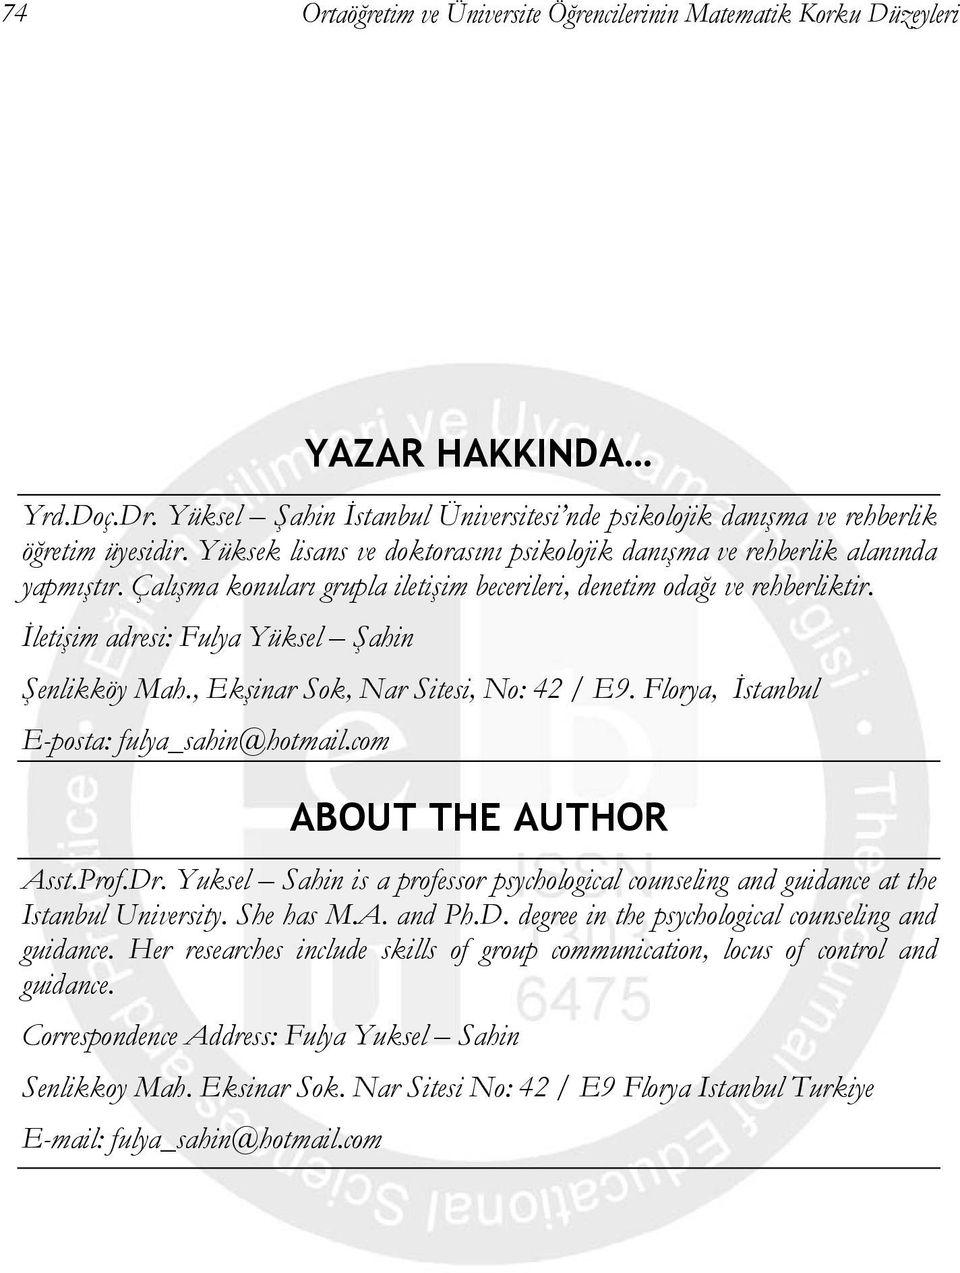 İletişim adresi: Fulya Yüksel Şahin Şenlikköy Mah., Ekşinar Sok, Nar Sitesi, No: 42 / E9. Florya, İstanbul E-posta: fulya_sahin@hotmail.com ABOUT THE AUTHOR Asst.Prof.Dr.